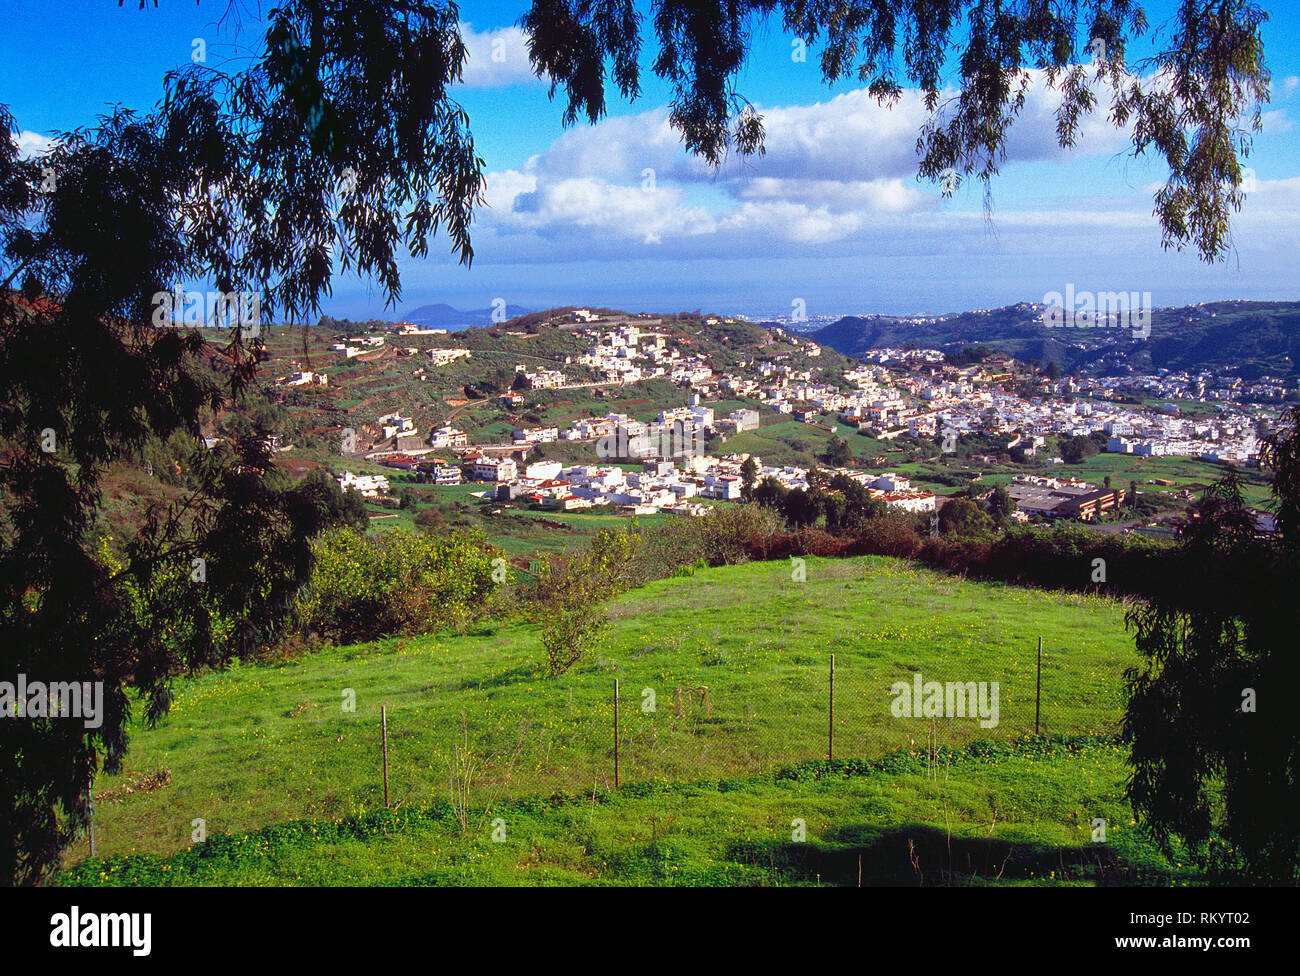 Overview and landscape. Teror, Gran Canaria island, Canary Islands, Spain. - Stock Image